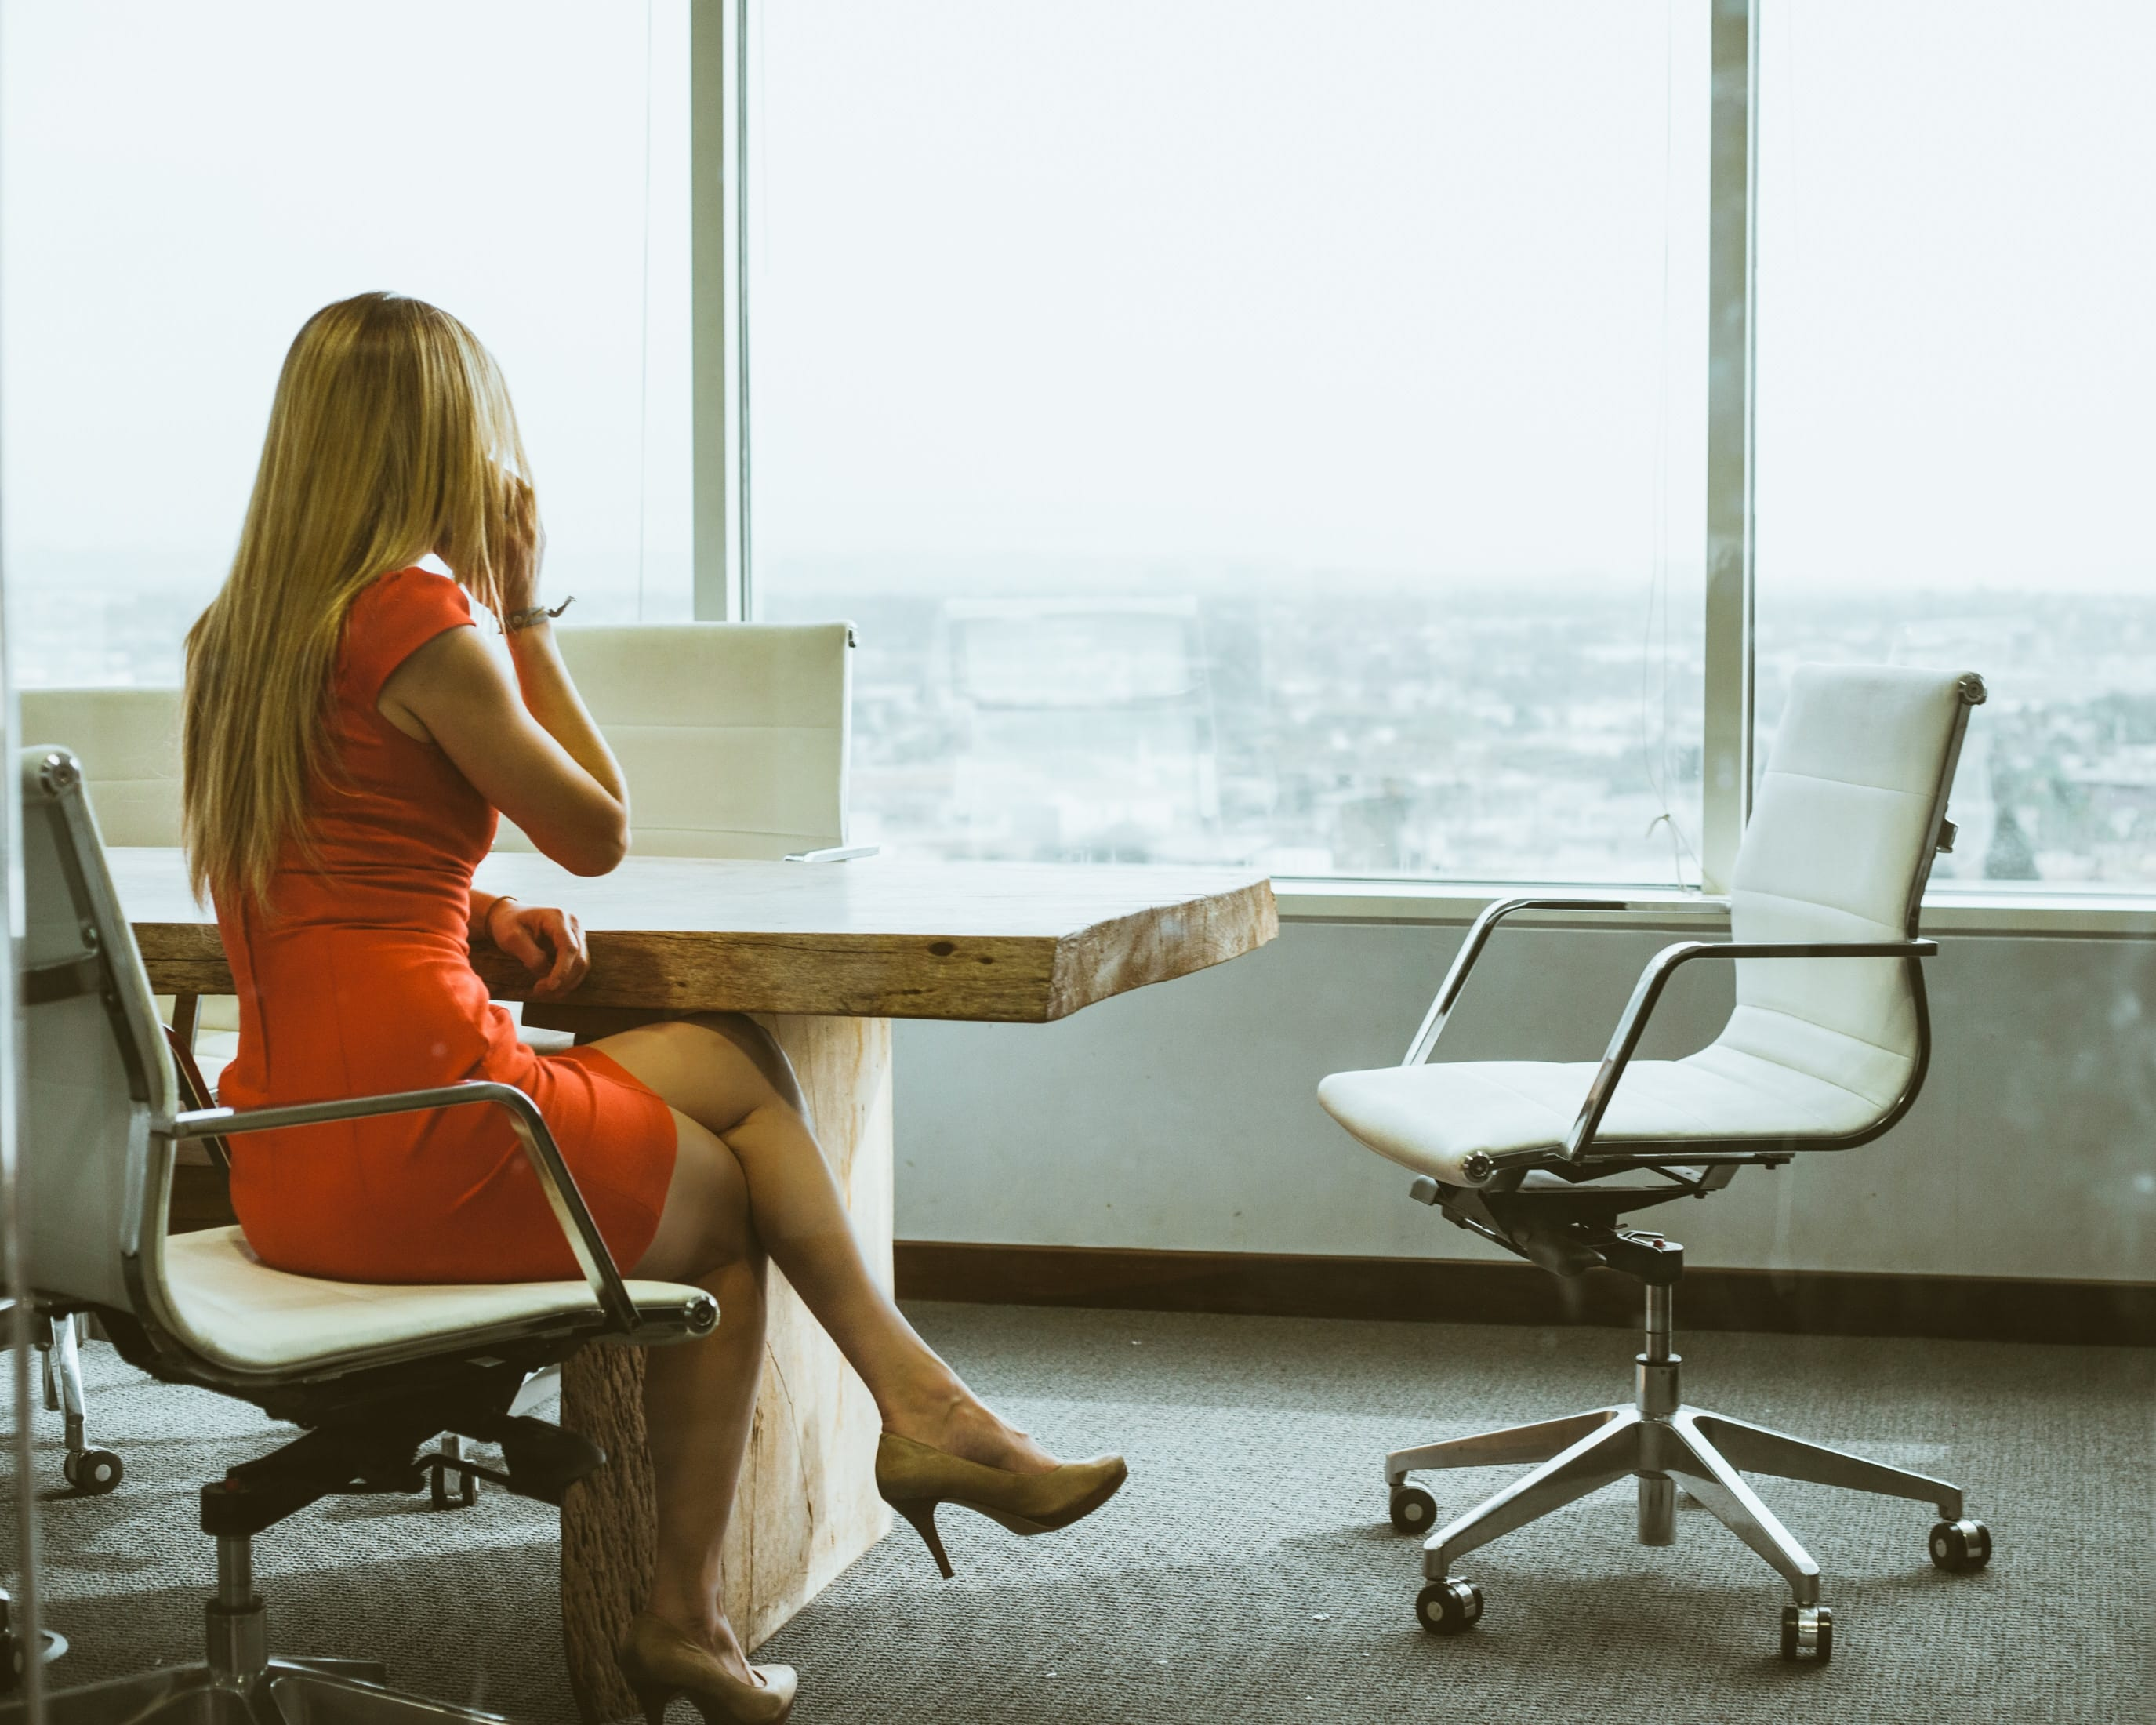 Woman in orange dress on cellphone sitting at conference room table looking out window; image by Dane Deaner, via Unsplash.com.